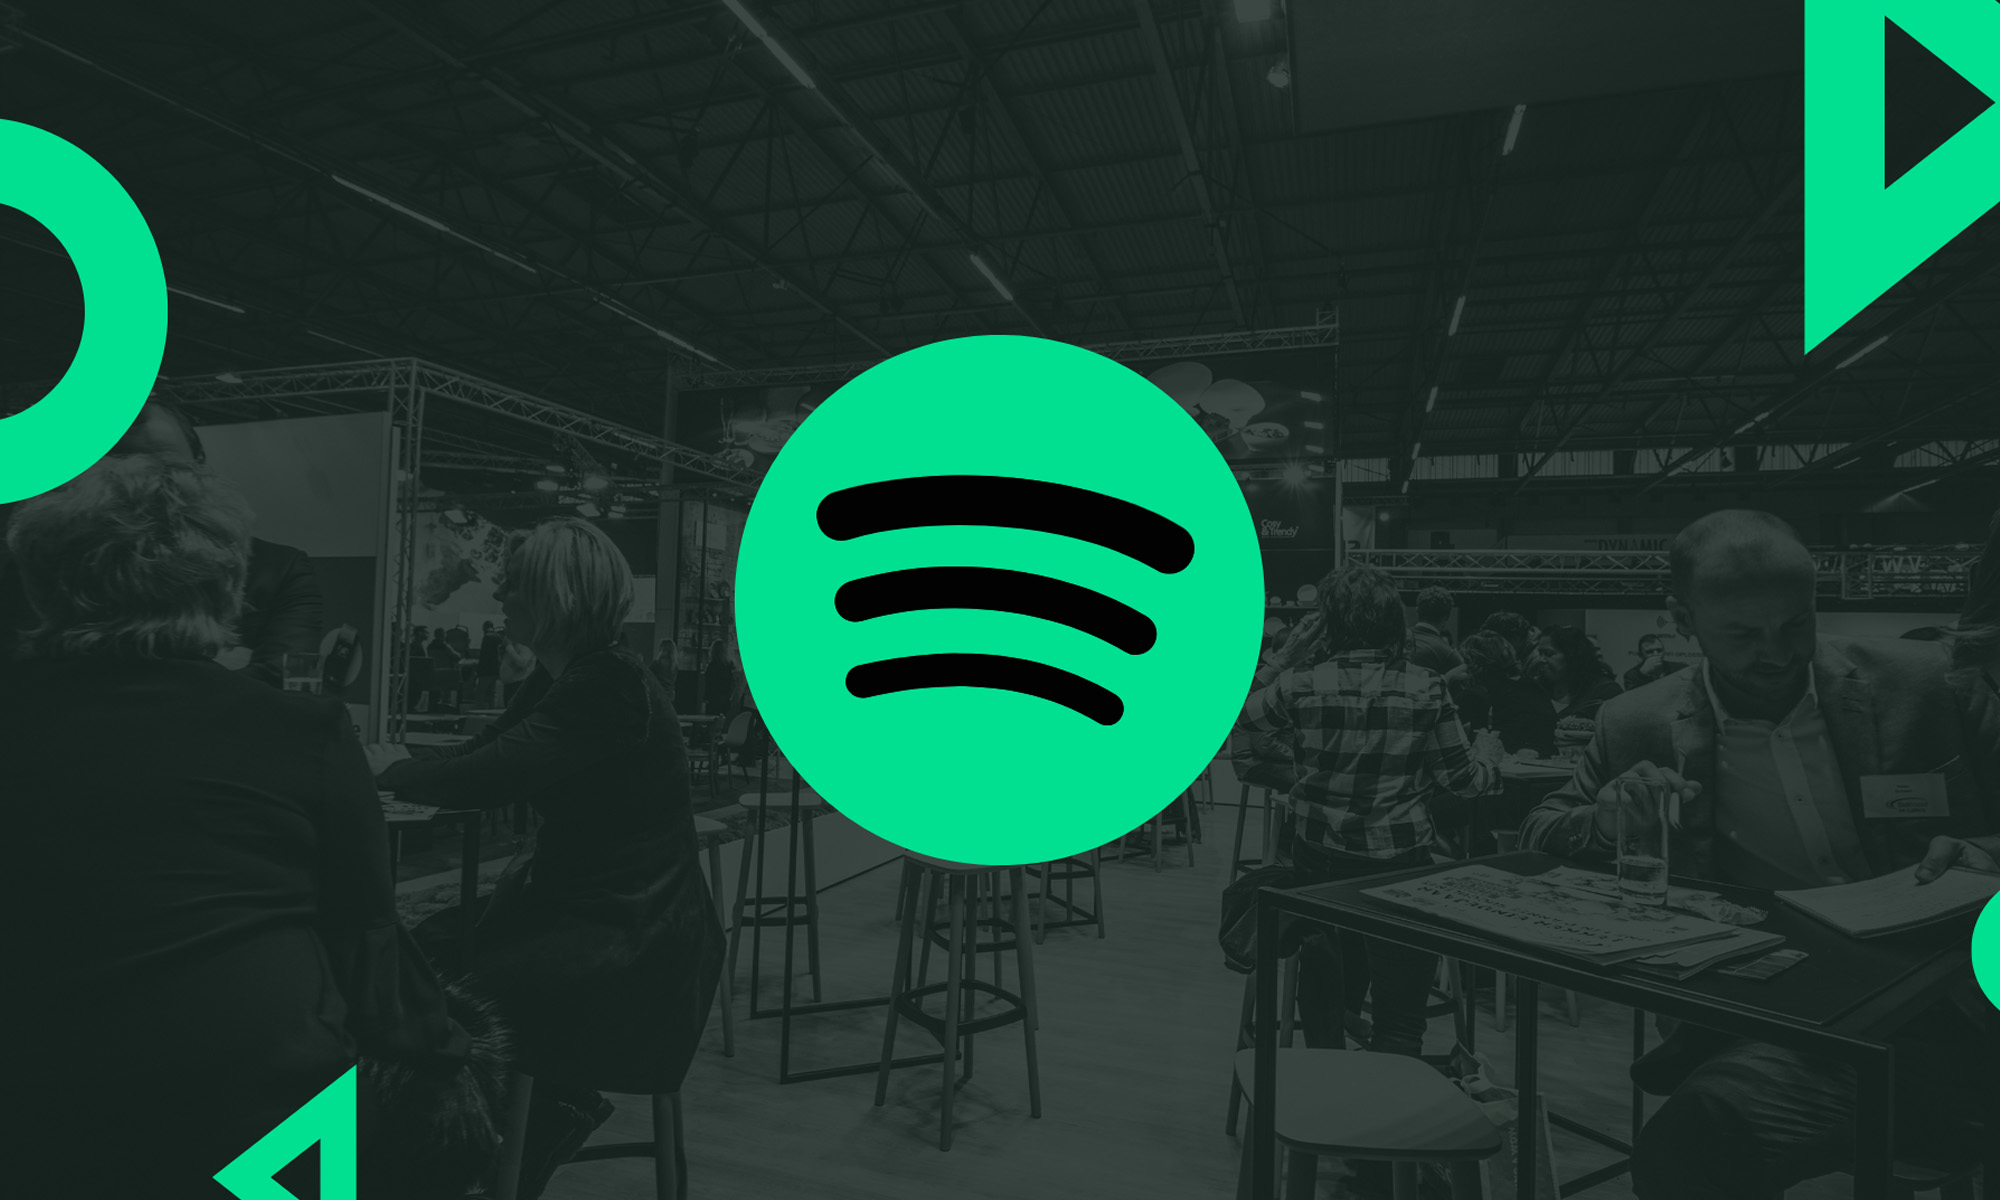 spotify is now available in 80 additional countries